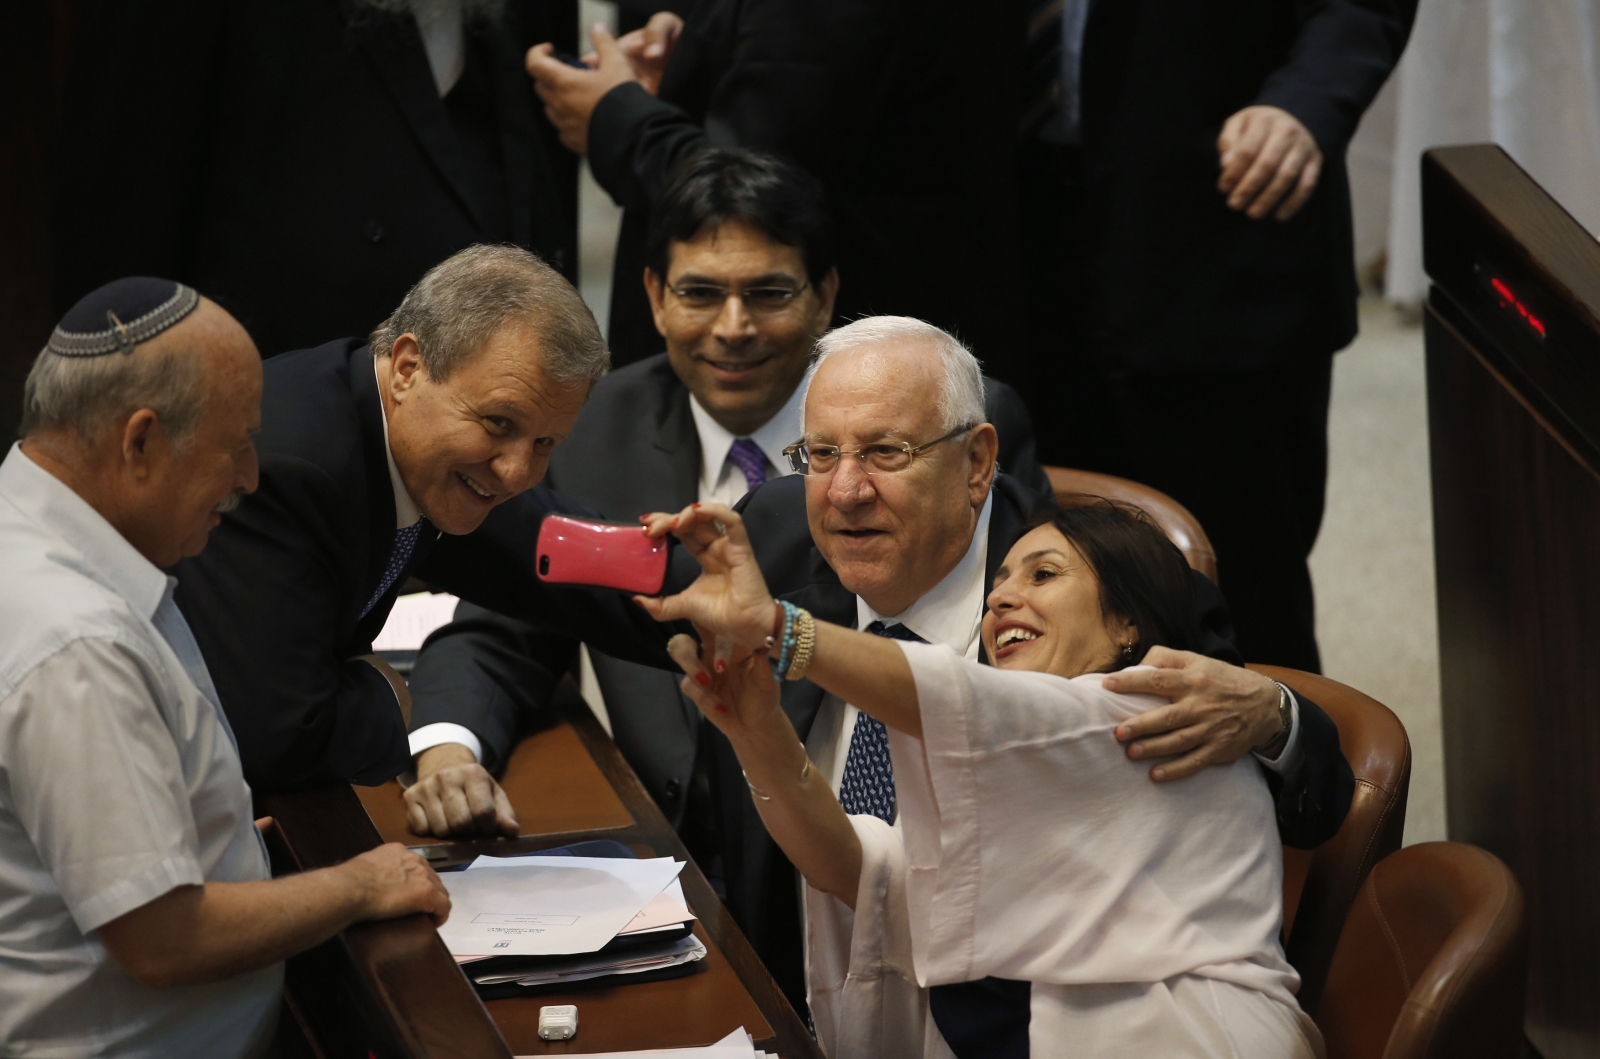 Israeli lawmaker Miri Regev (R) takes a selfie with presidential candidates, former Speaker of Parliament Reuven Rivlin (2nd R) and former Finance Minister Meir Sheetrit (2nd L)